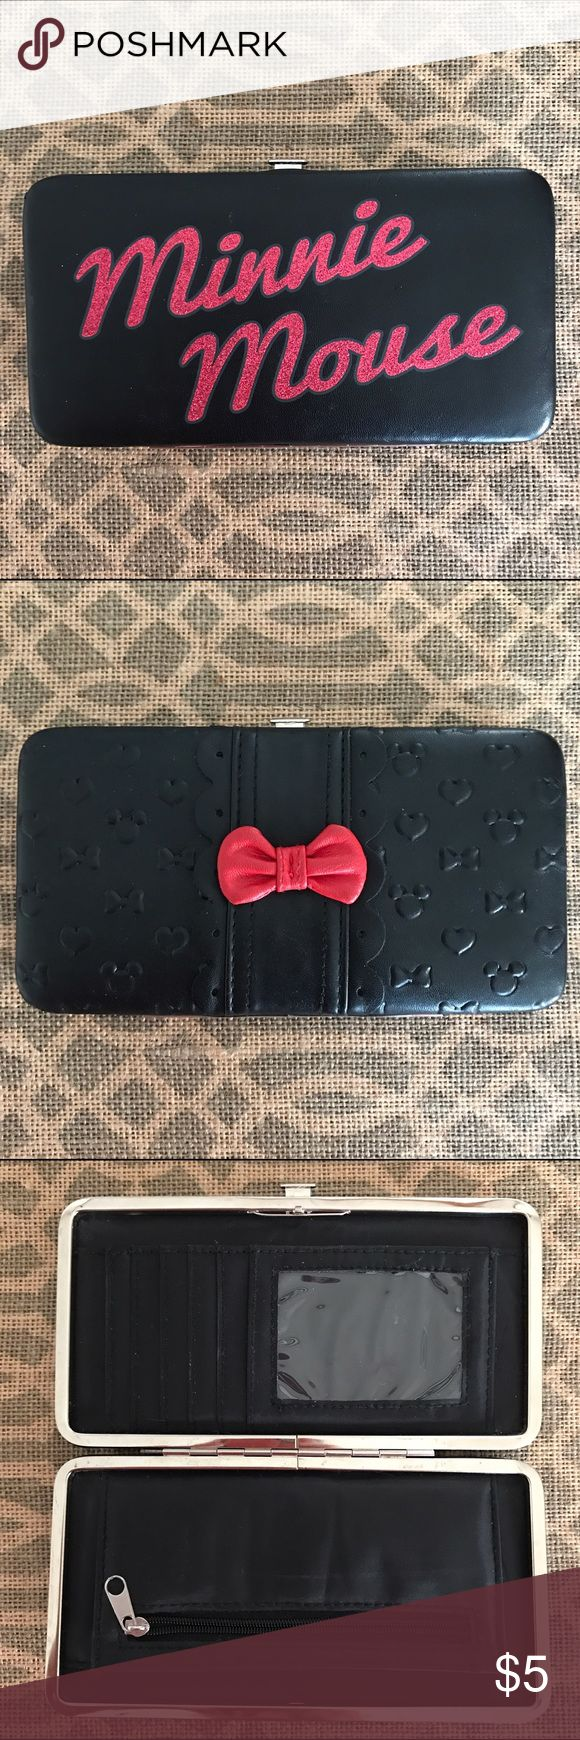 Minnie Mouse Wallet Super cute Minnie Mouse branded wallet. Pre-loved but still good condition. ❤️ Bags Wallets